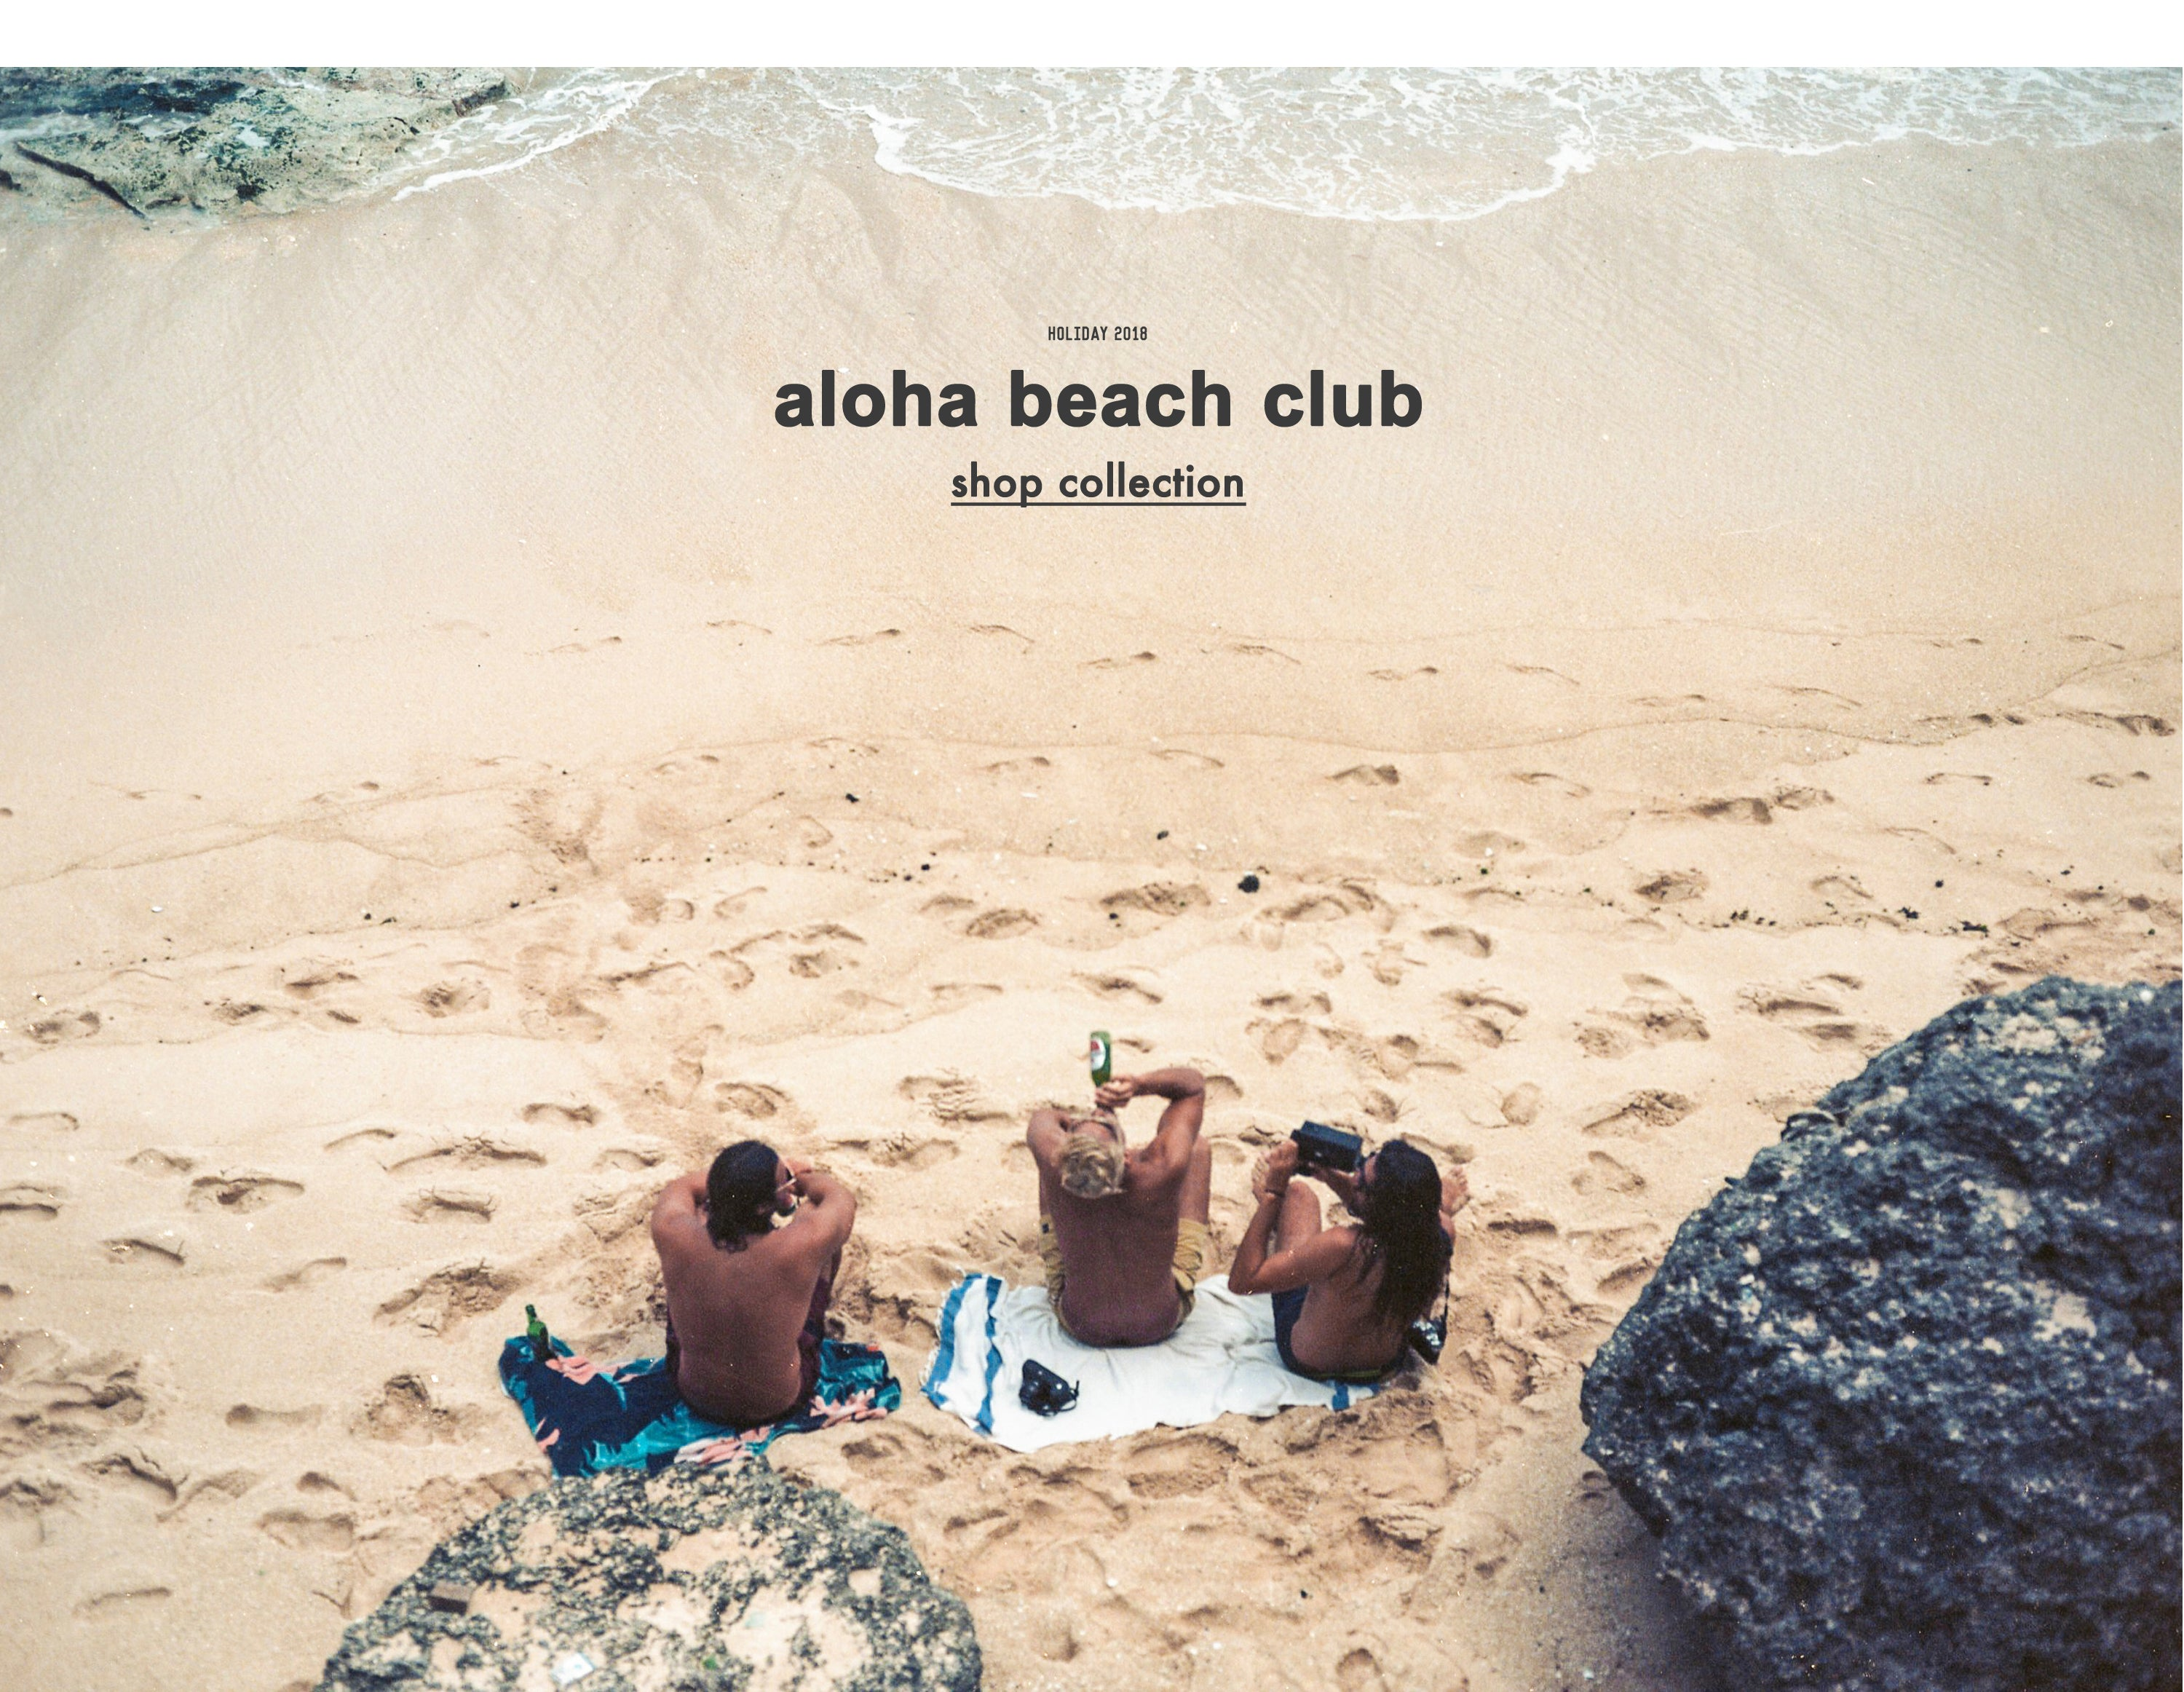 Aloha Beach Club Holiday 2018